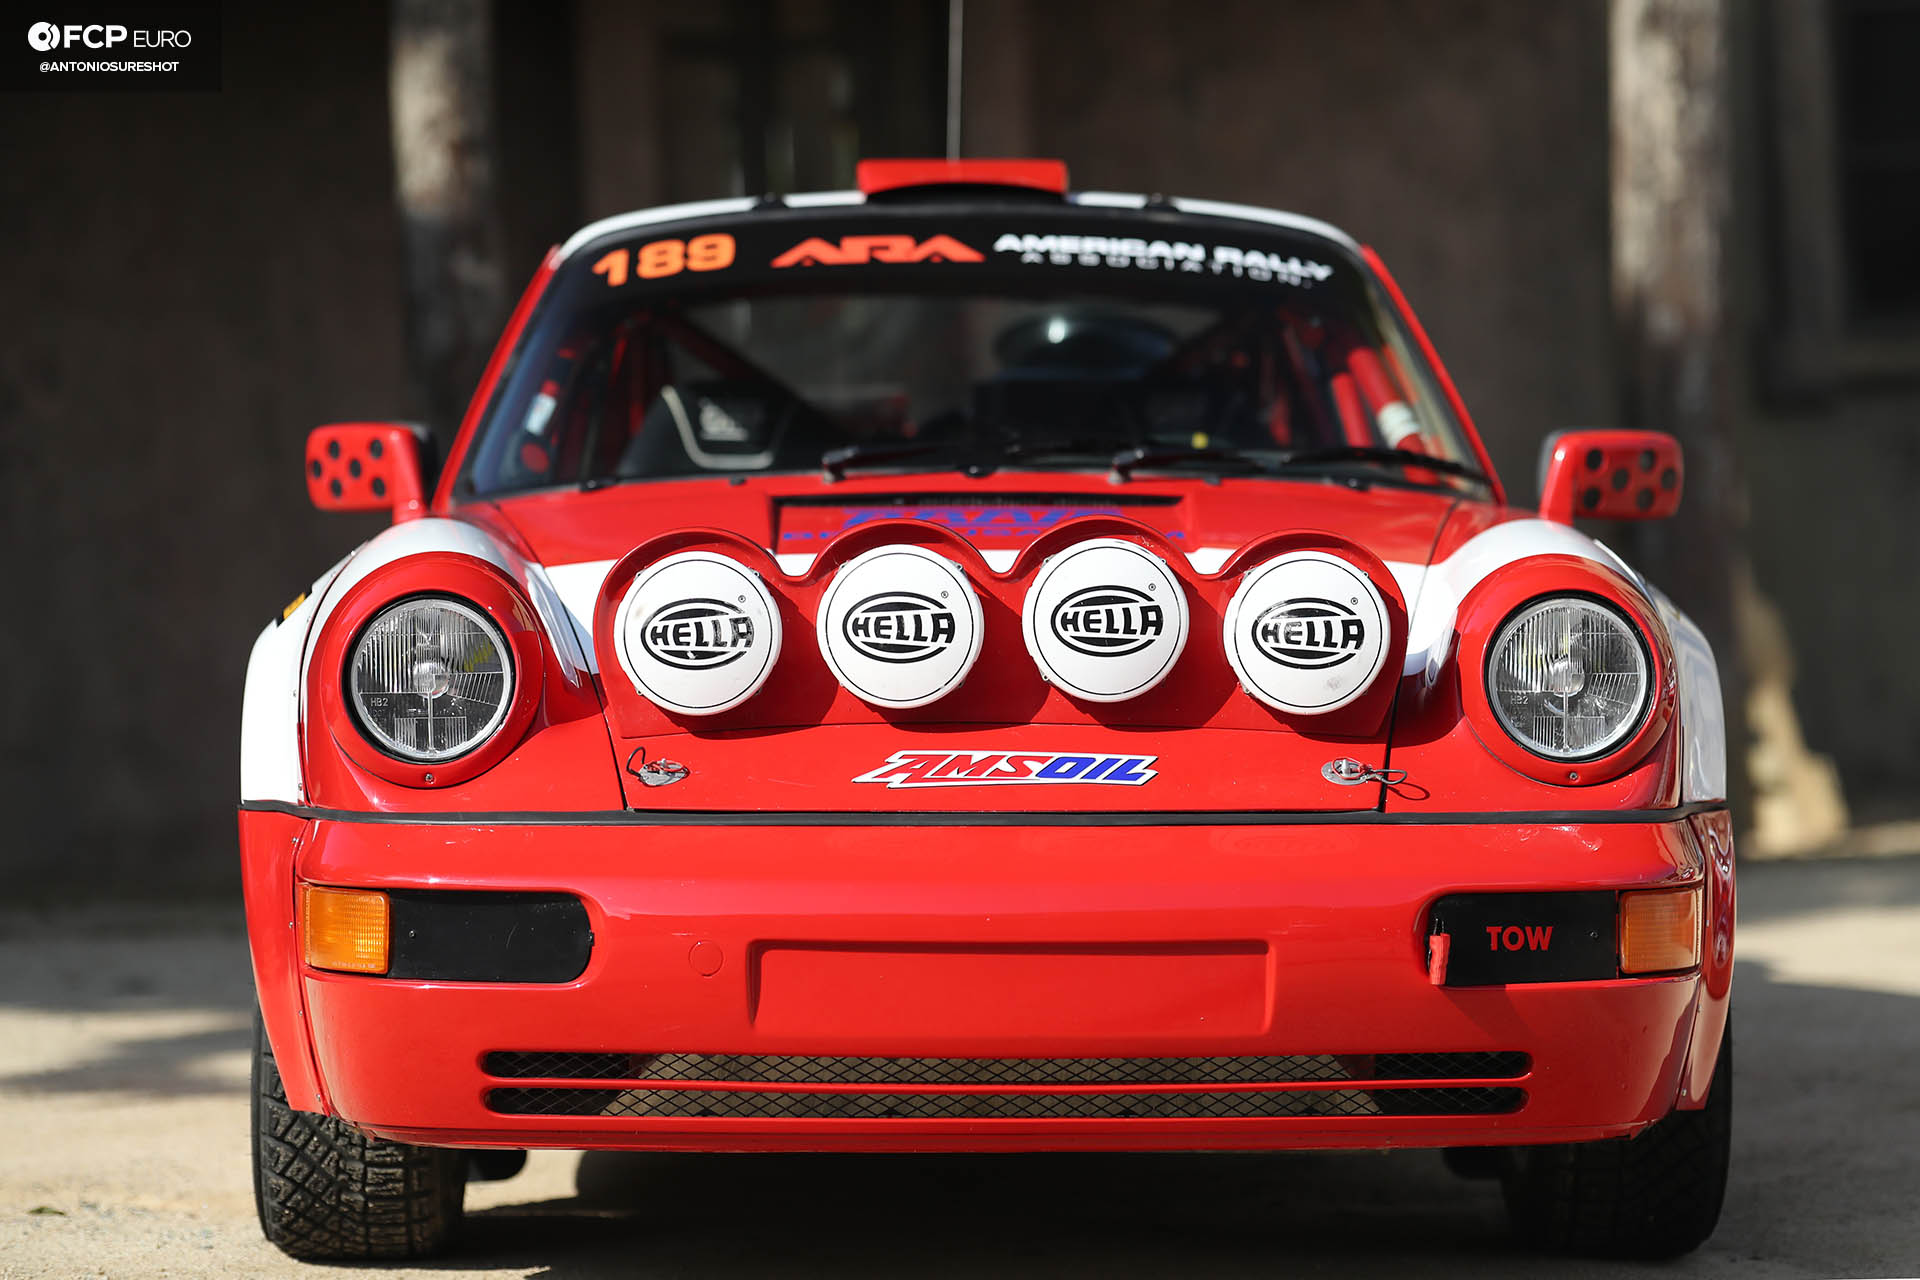 Safari 964 Rothsport Racing Porsche 911 Rally Car Mexican 1000 Luftgekuhlt Olympus Rally